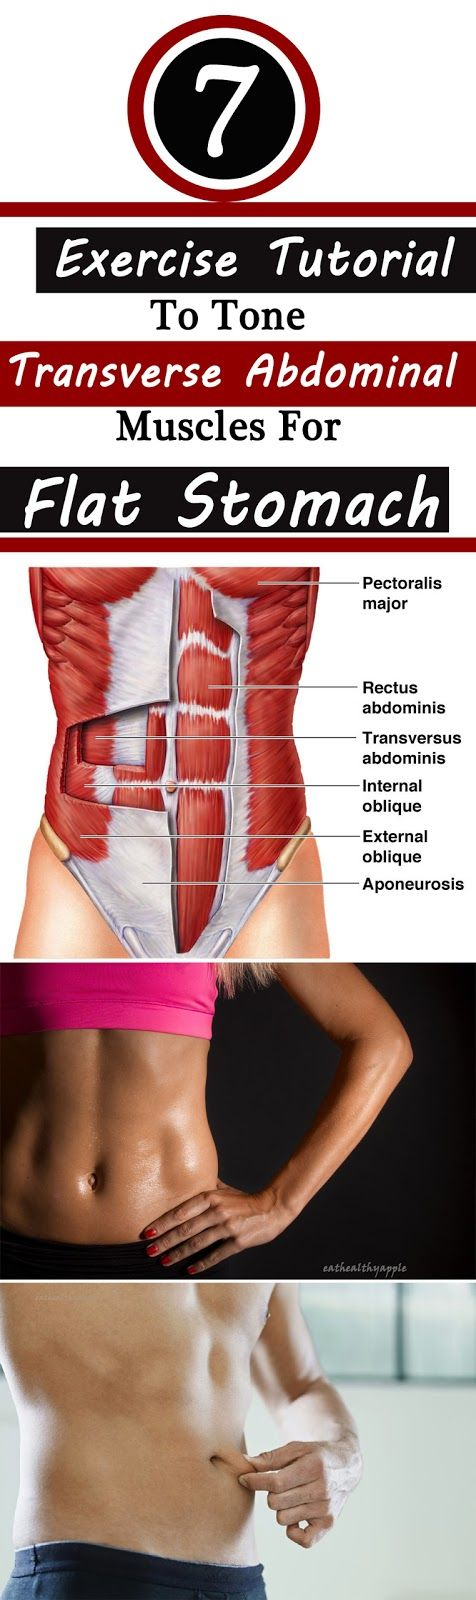 7 Absolutely Working Exercise Tutorial To Tone Transverse Abdominal Muscles For Flat Stomach